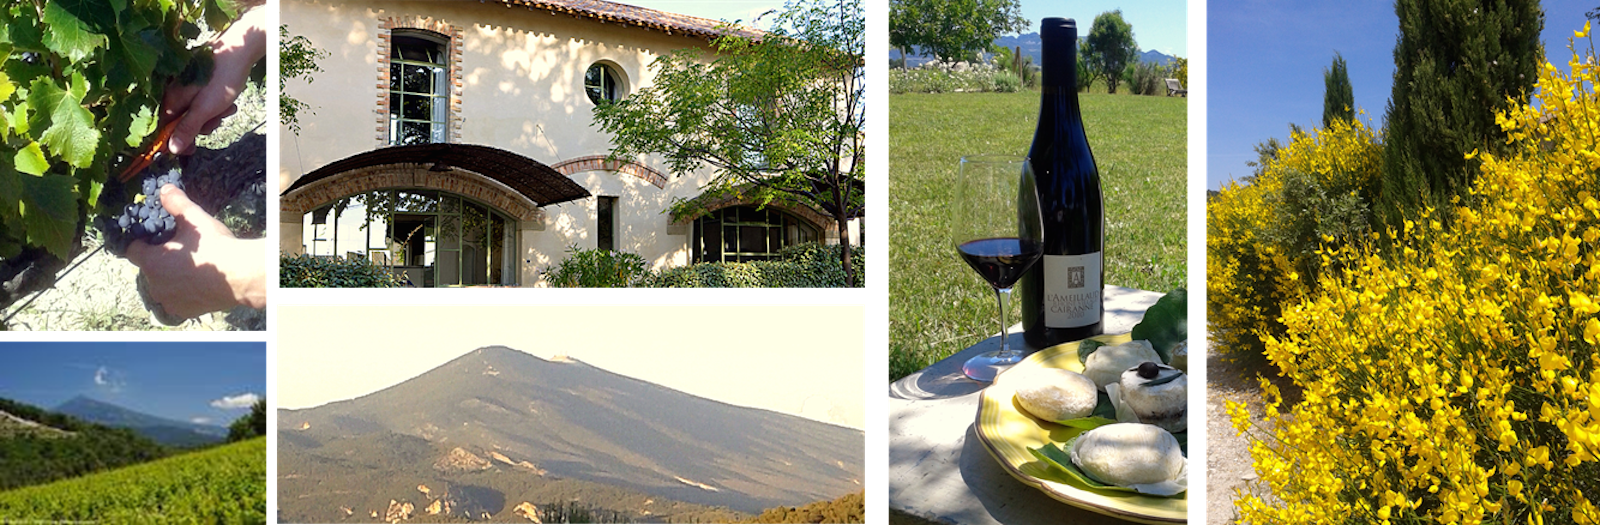 Provence villa rental and Cotes-du- Rhone wine